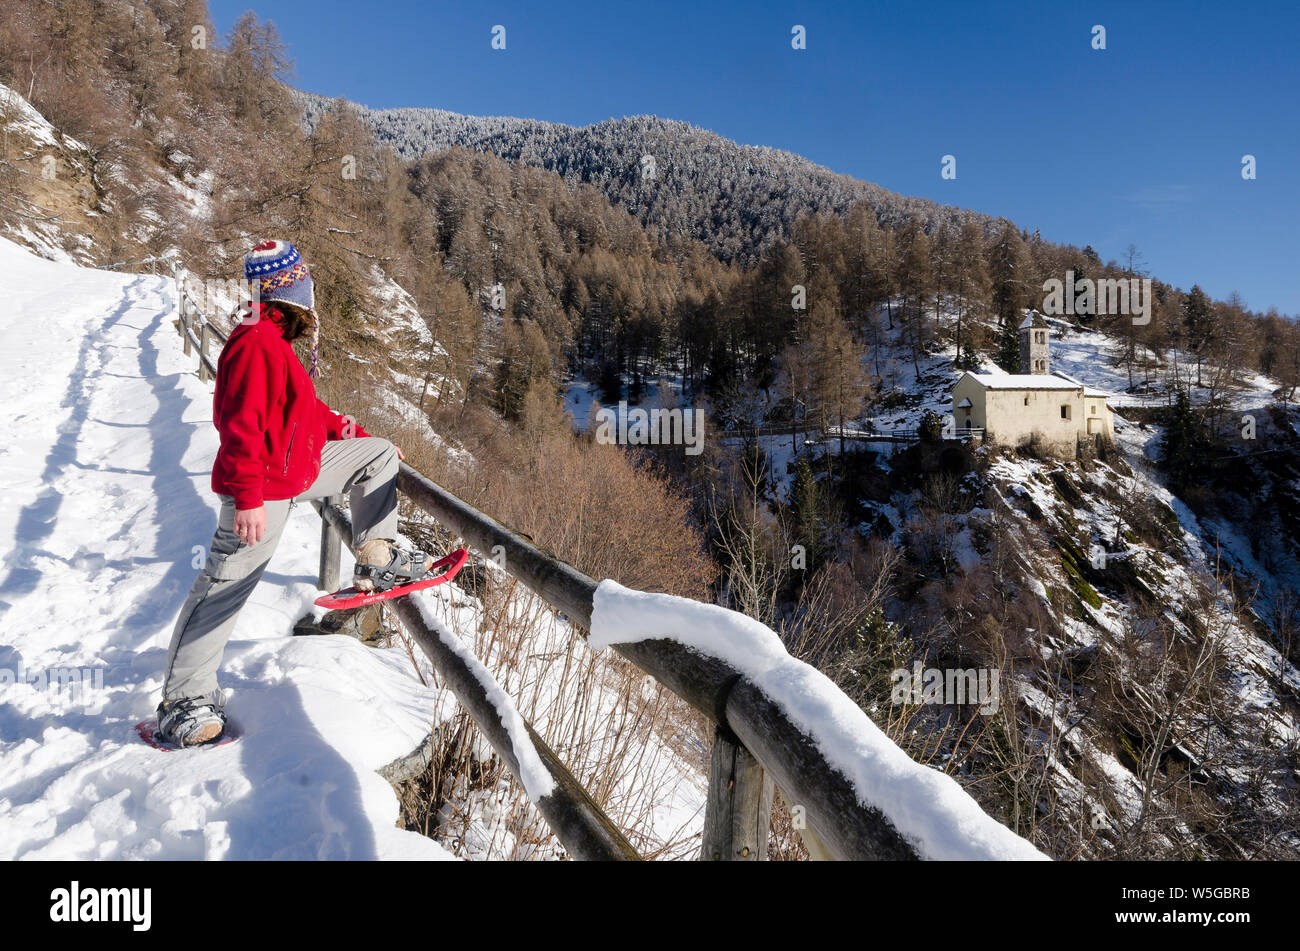 Italy, Lombardy, Retiche Alps, Camonica Valley, snowshoeing along the trail to the ancient alpine church of San Clemente (twelfth century) Stock Photo